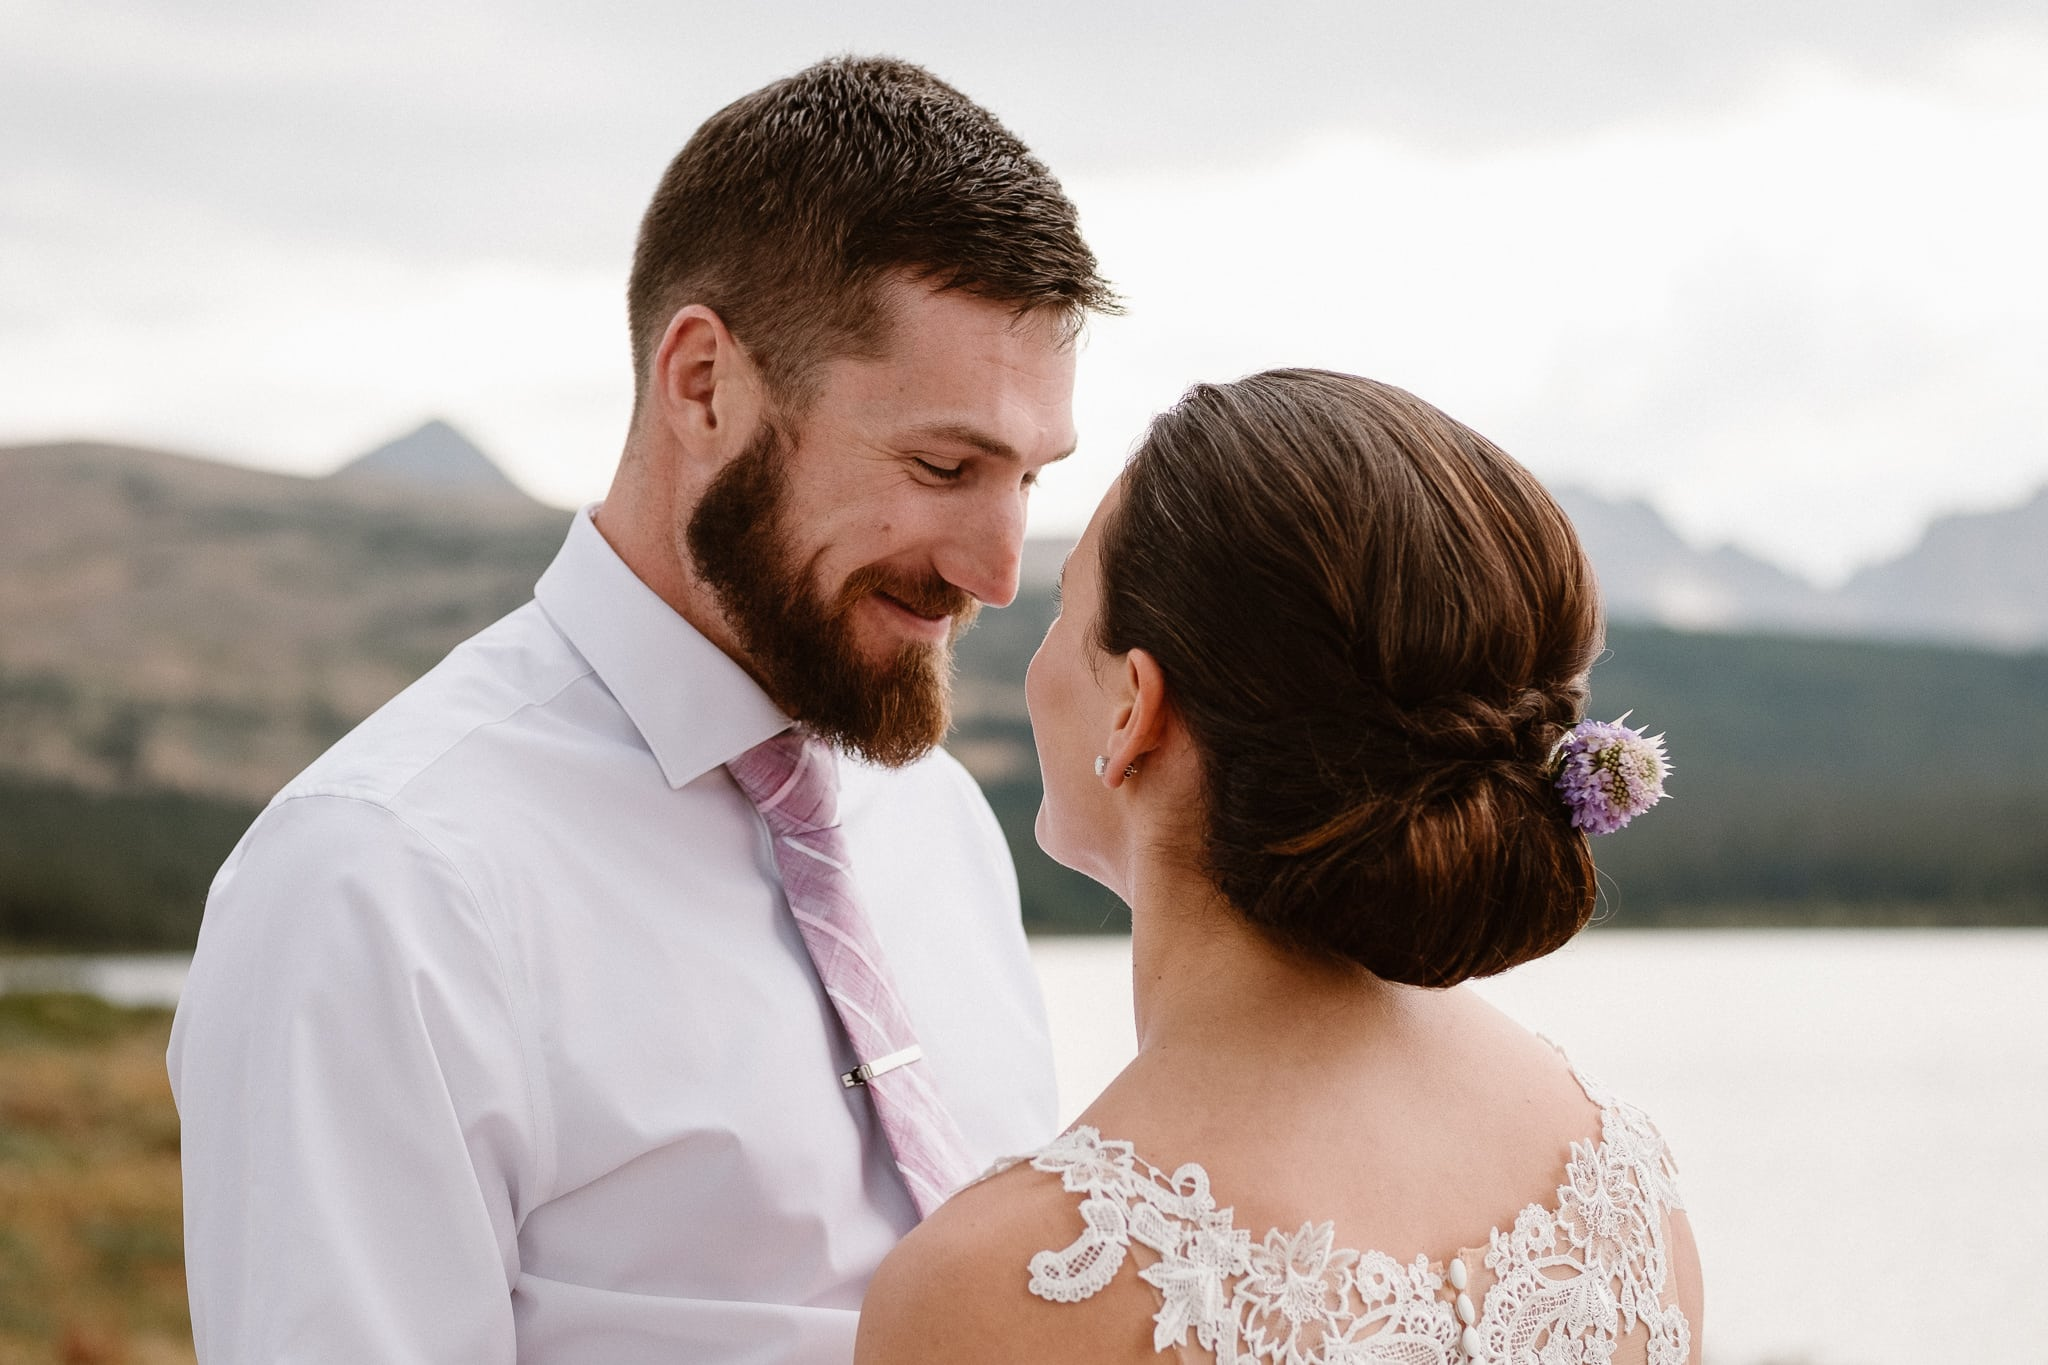 Colorado mountain elopement photographer, alpine lake adventure wedding, Boulder wedding photographer, bride and groom portraits in mountains, laidback boho wedding